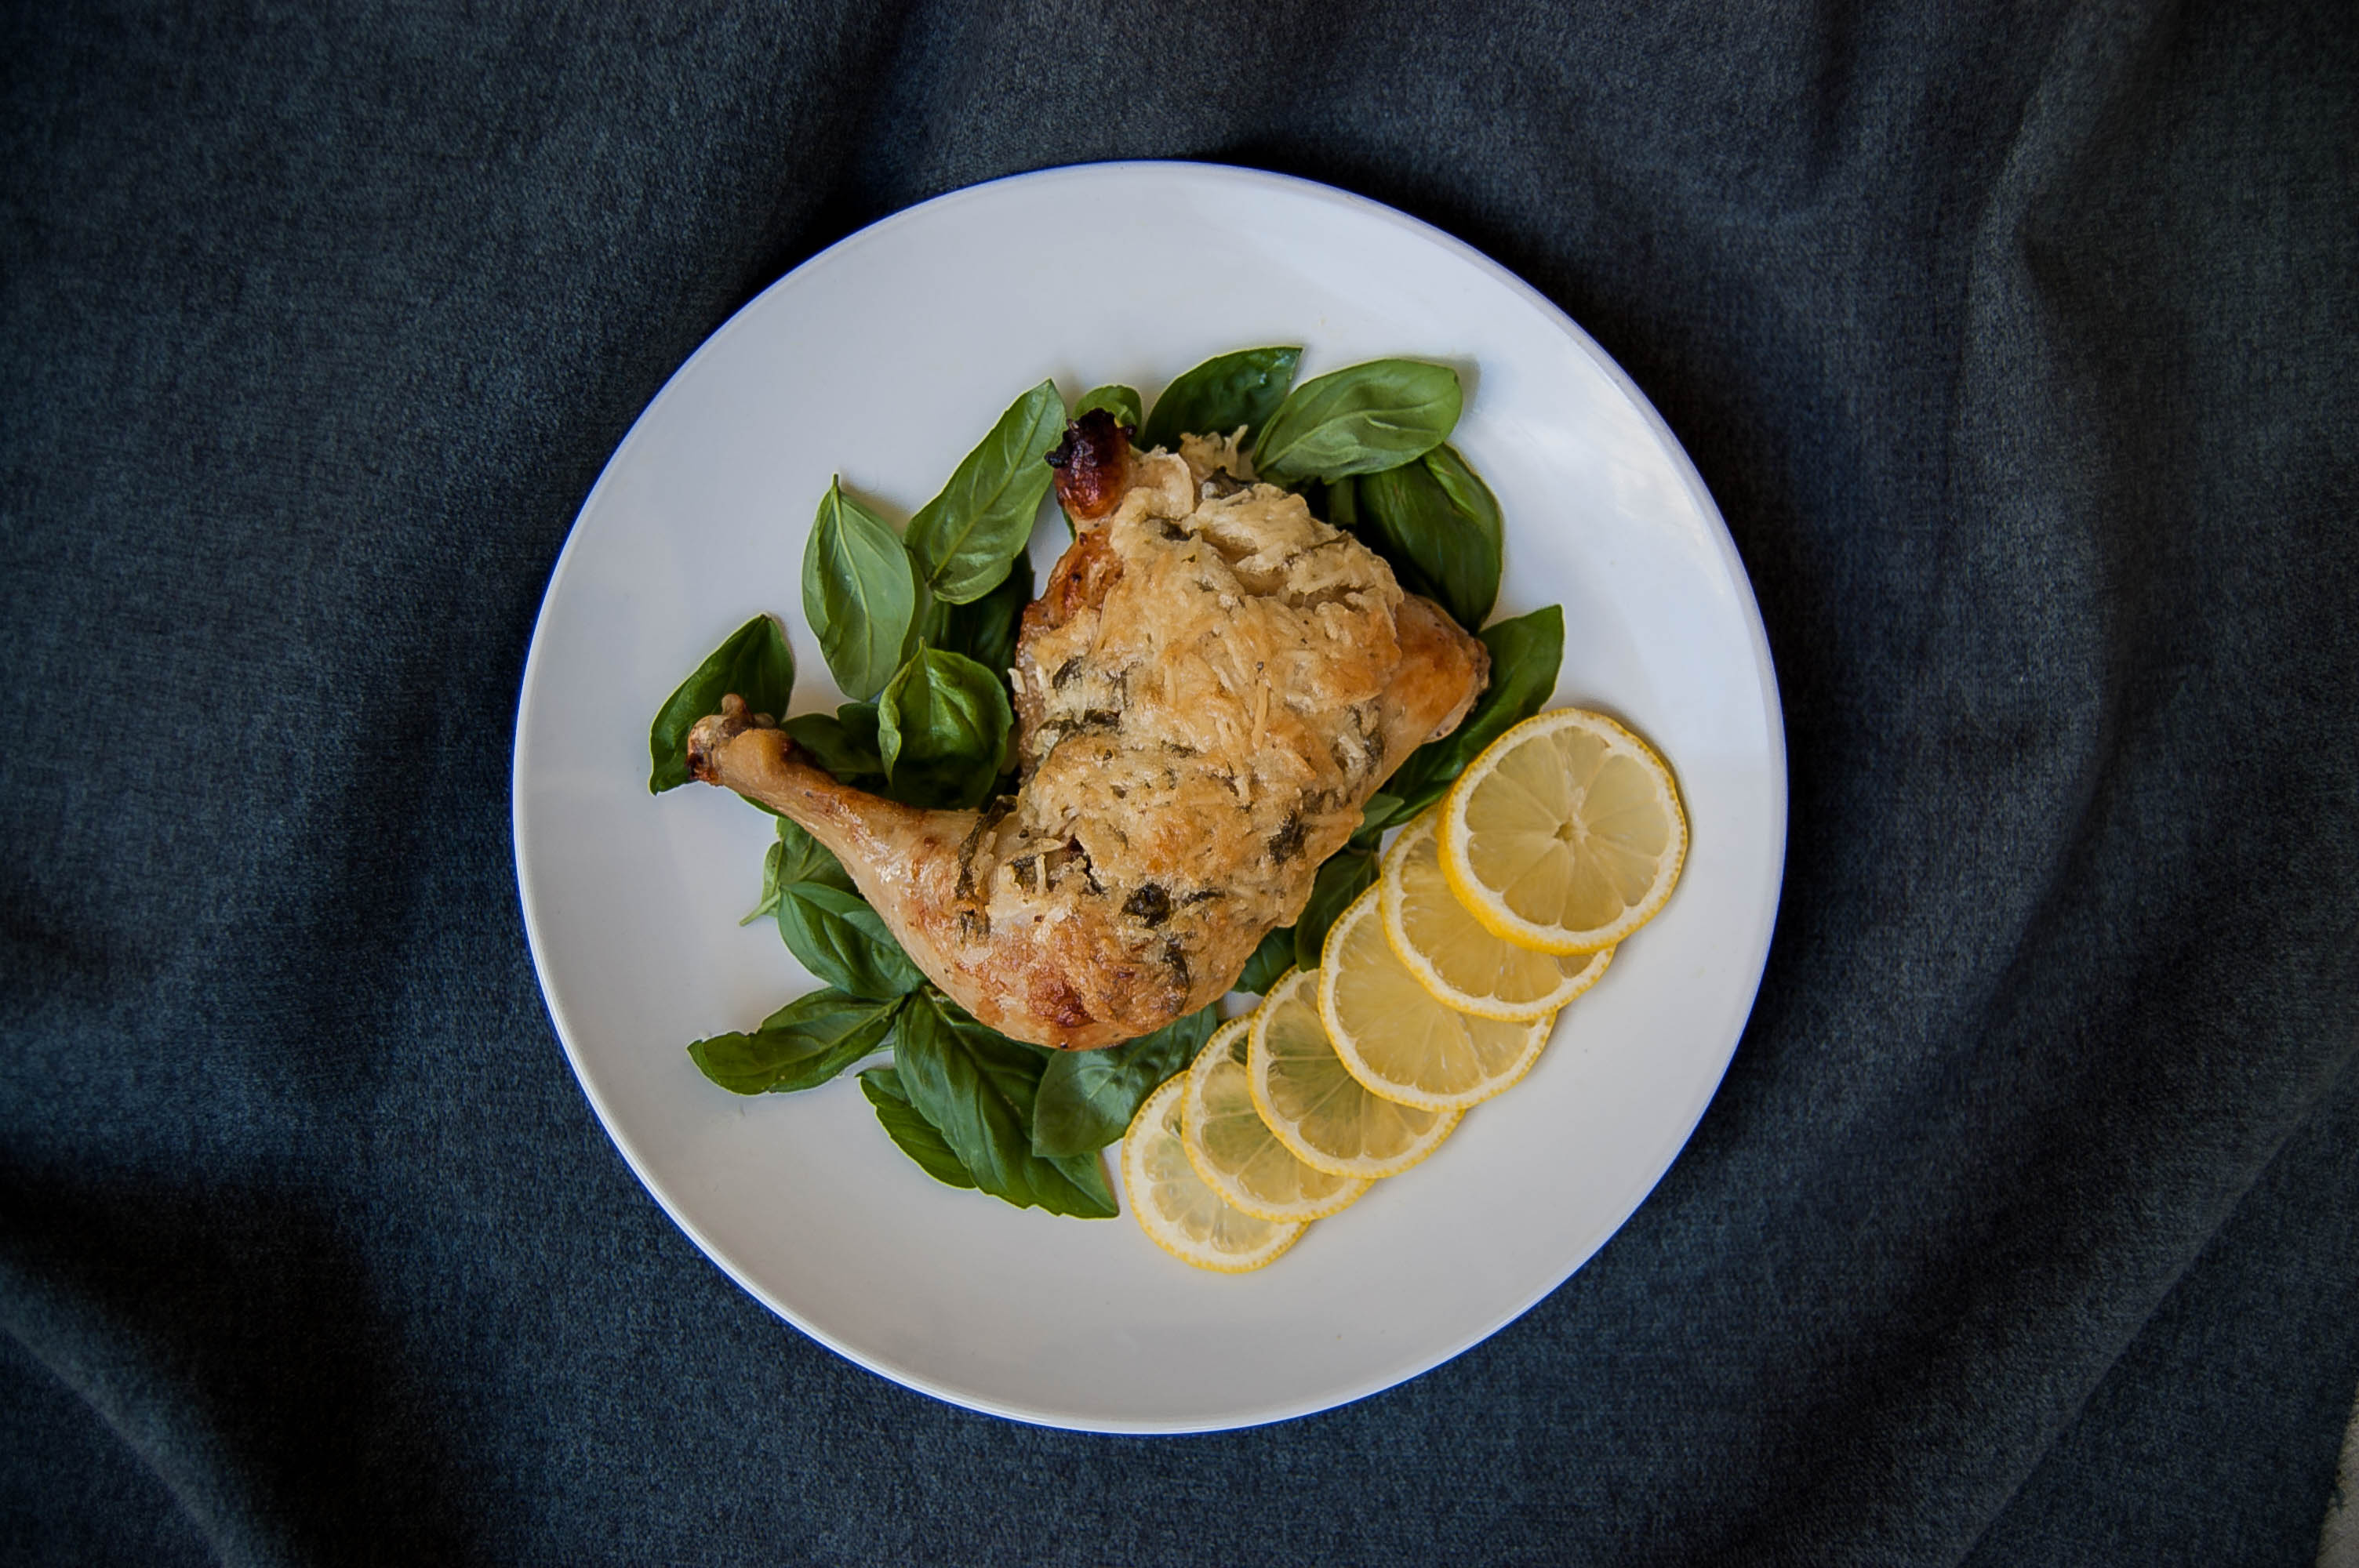 Parmesan Lemon Chicken $13